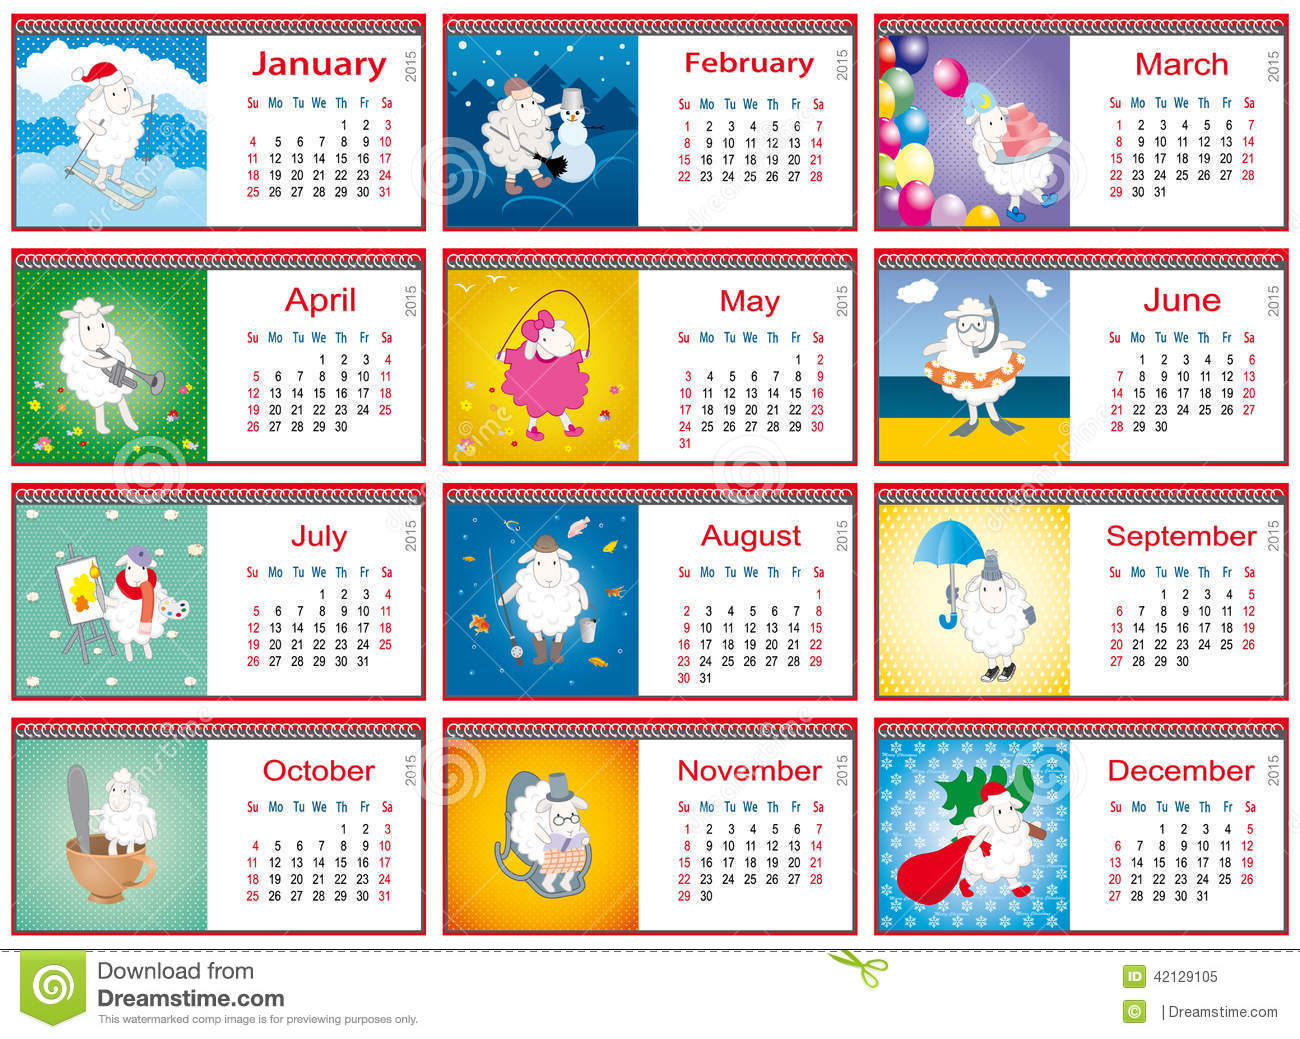 Calendars For Each Month In 2015 With Active Sheep Stock ...